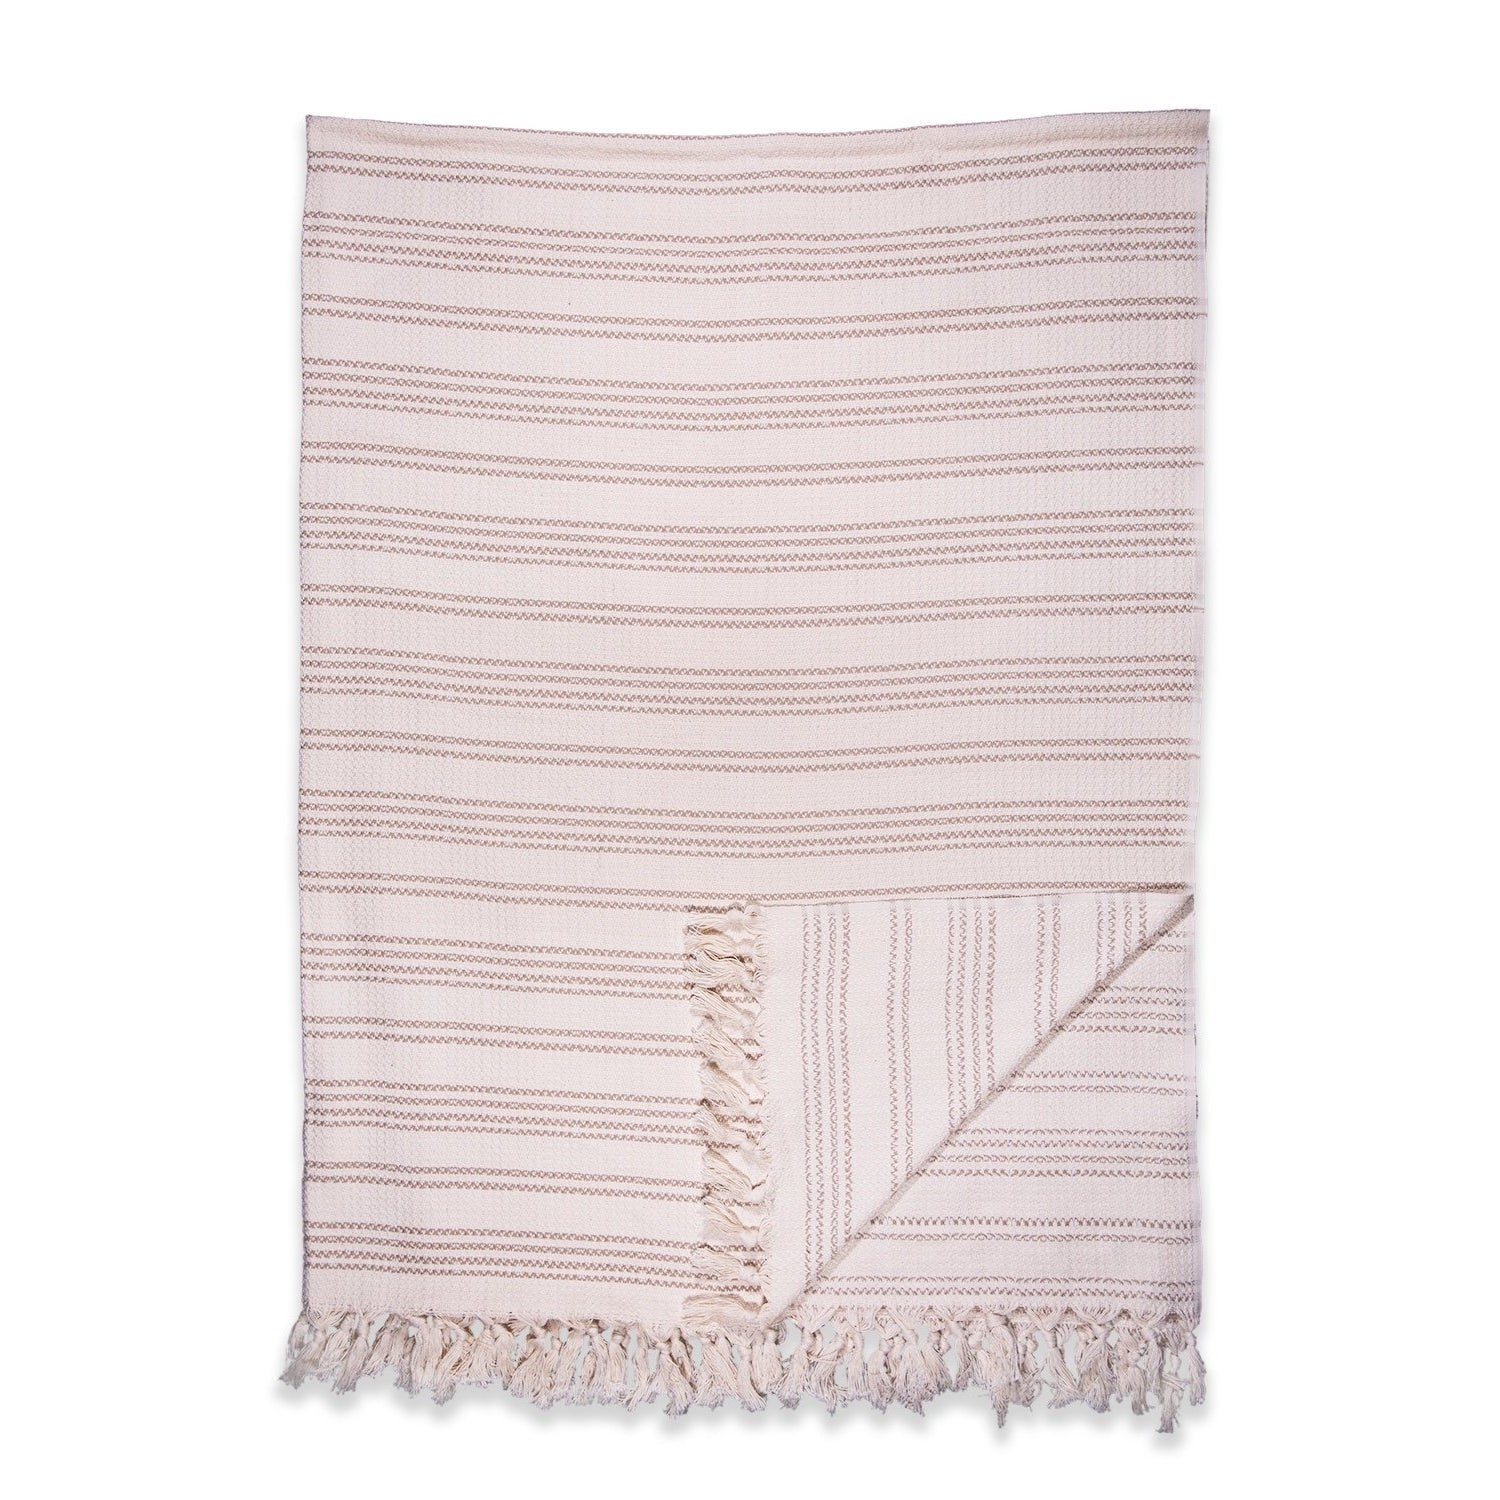 The Seasons Blanket in Cream